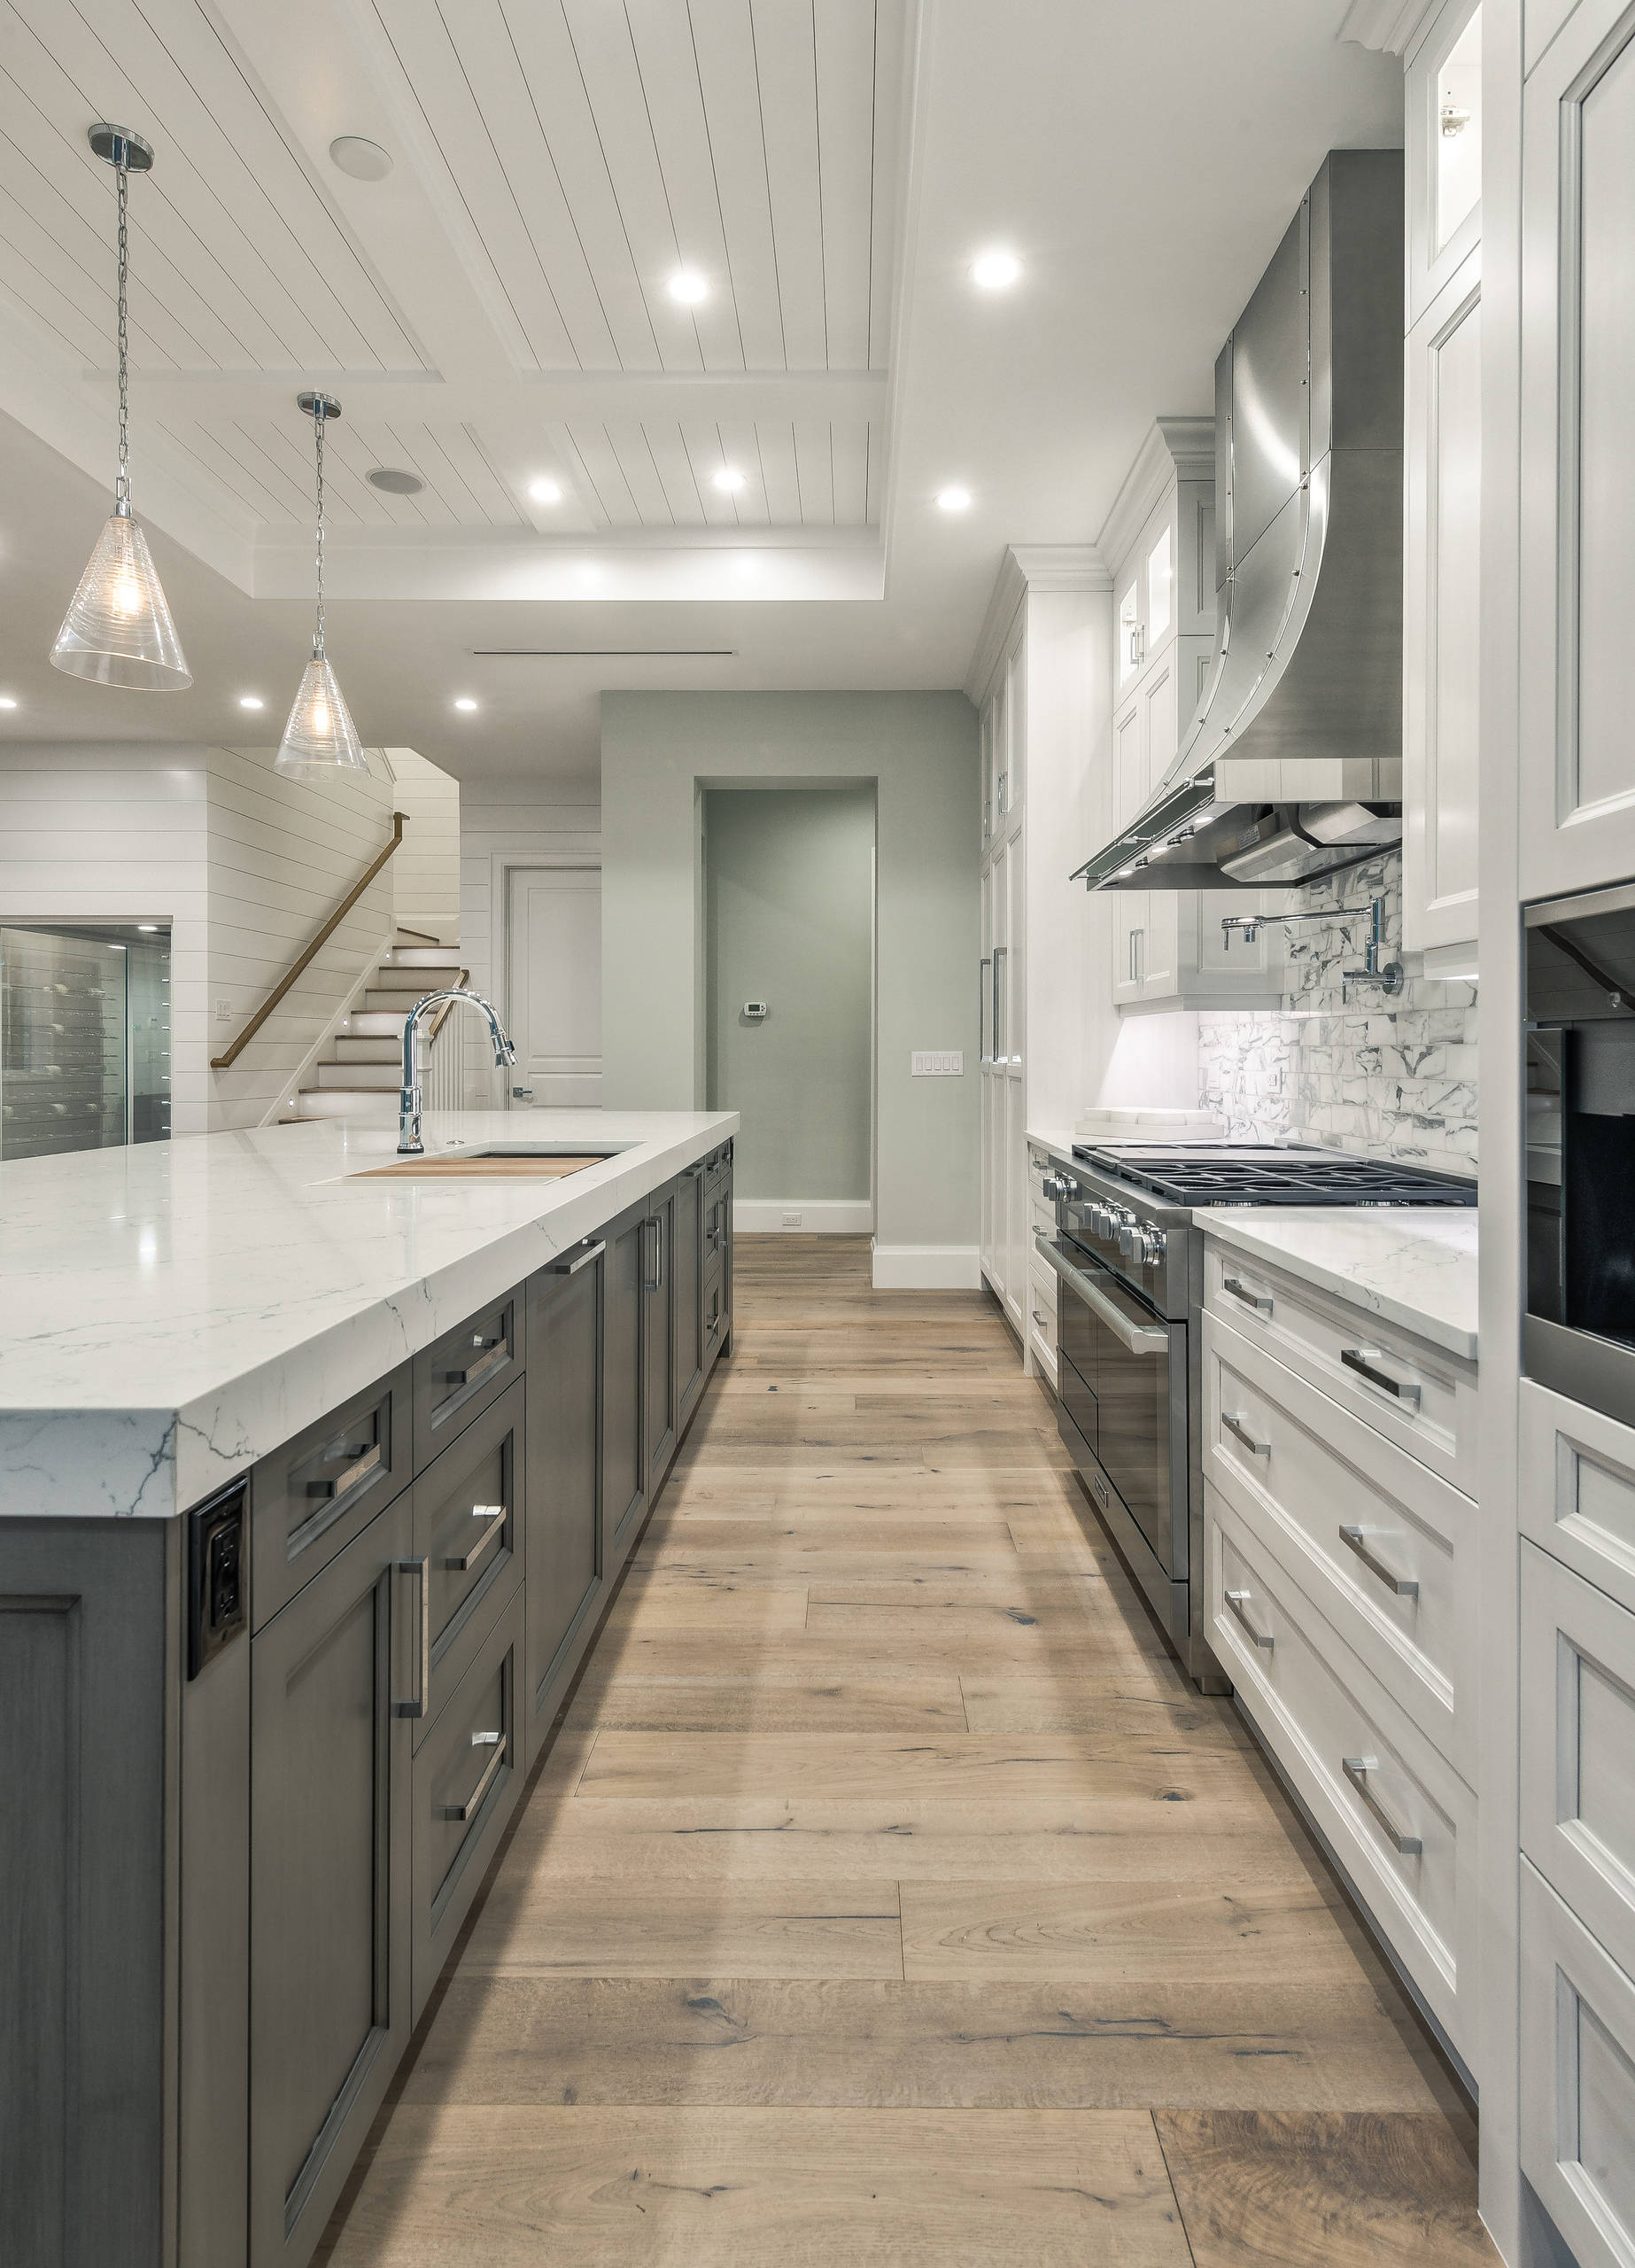 75 Beautiful Modern Kitchen Pictures Ideas April 2021 Houzz